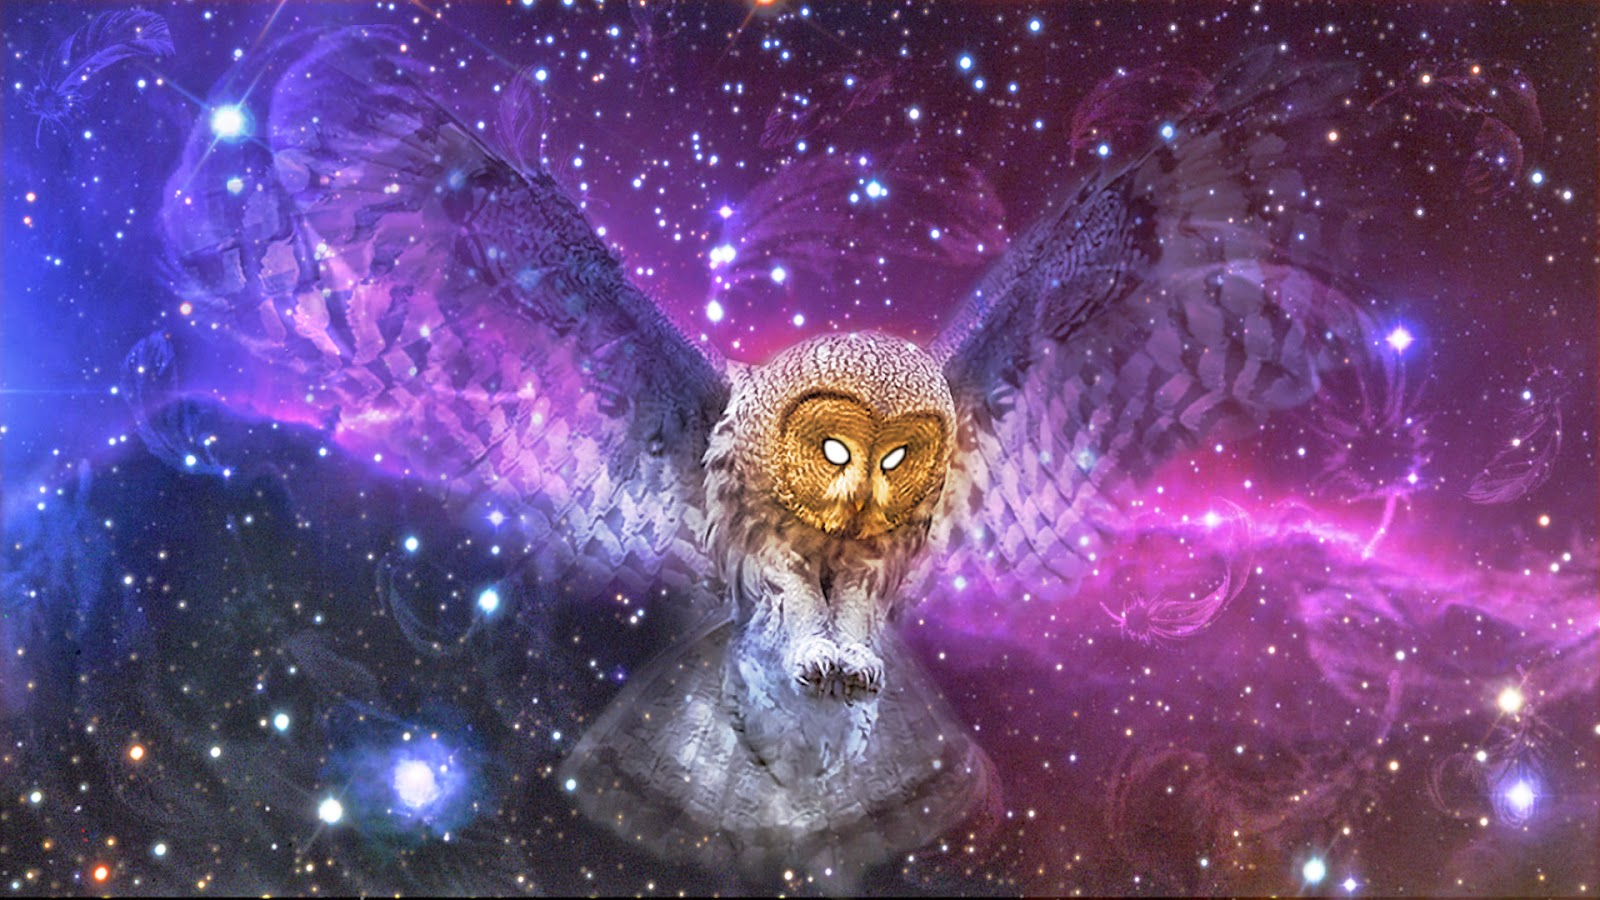 http://transudationism.blogspot.com/2014/02/the-wings-of-owl-of-minerva.html